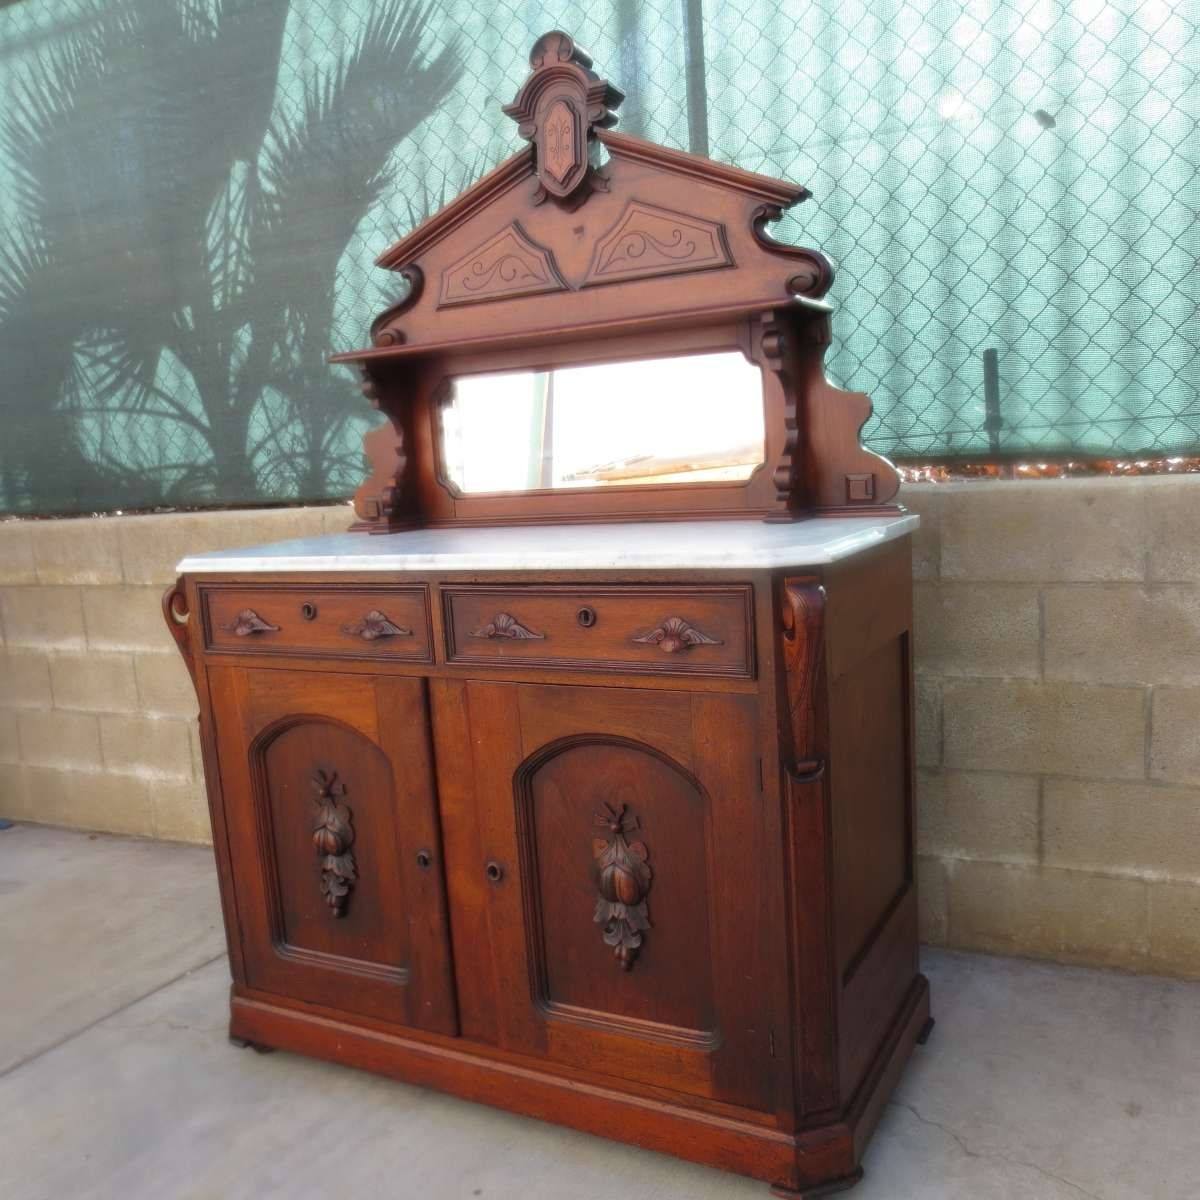 Antique Sideboards And Buffets Images — All Furniture : Antique Intended For Antique Sideboards Buffets (View 7 of 20)